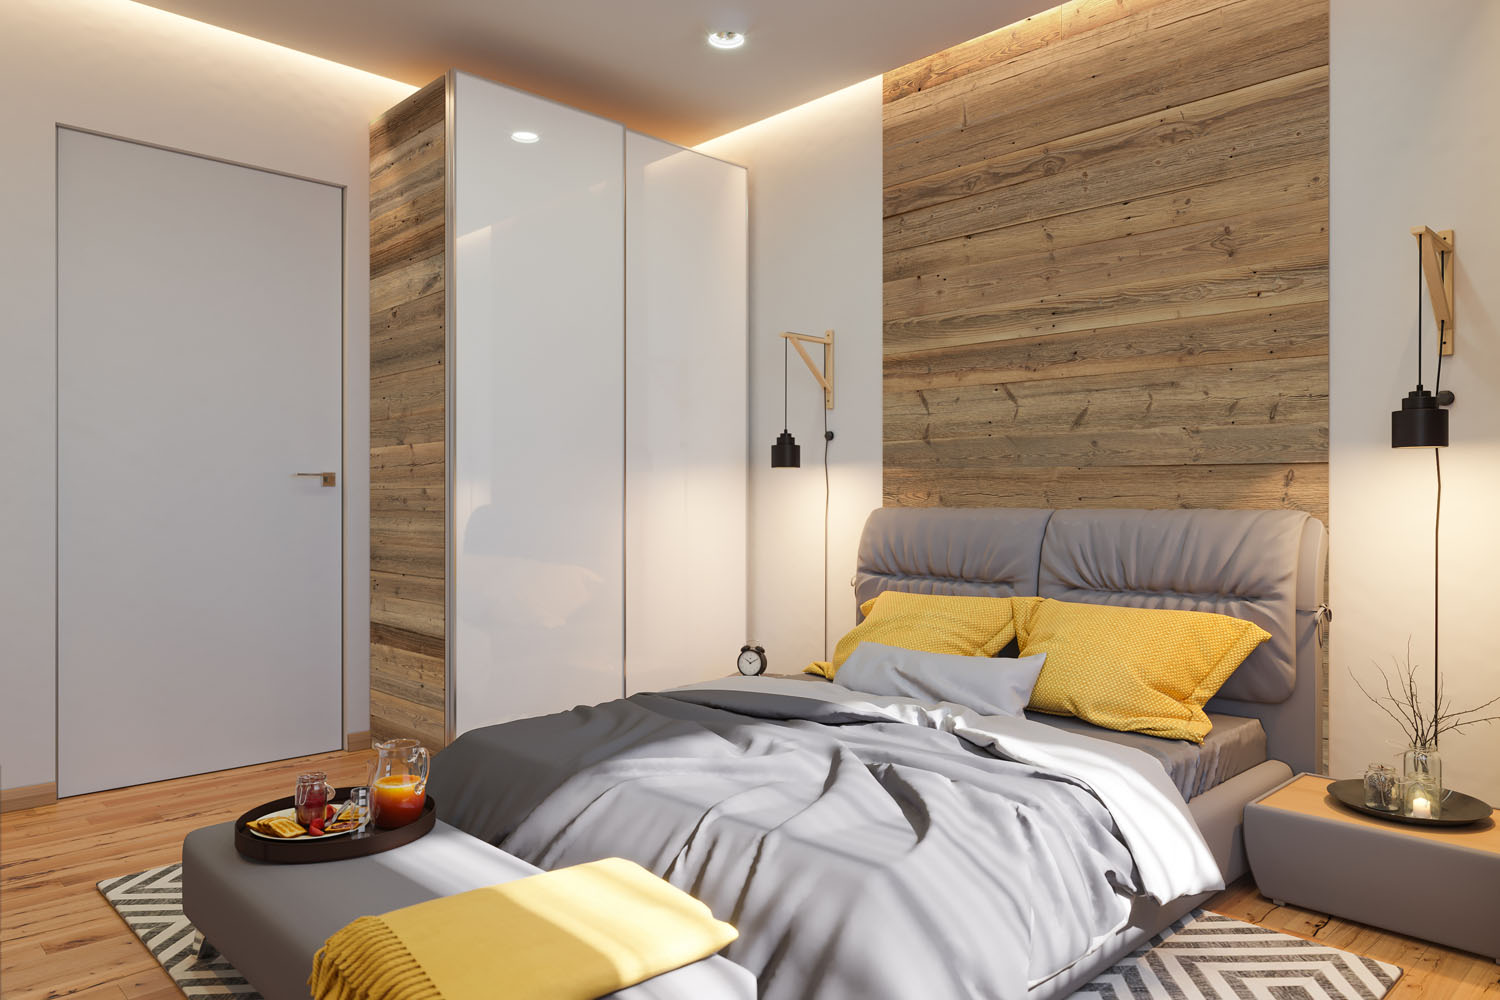 Brushed boards in bedroom interior with yellow pillows